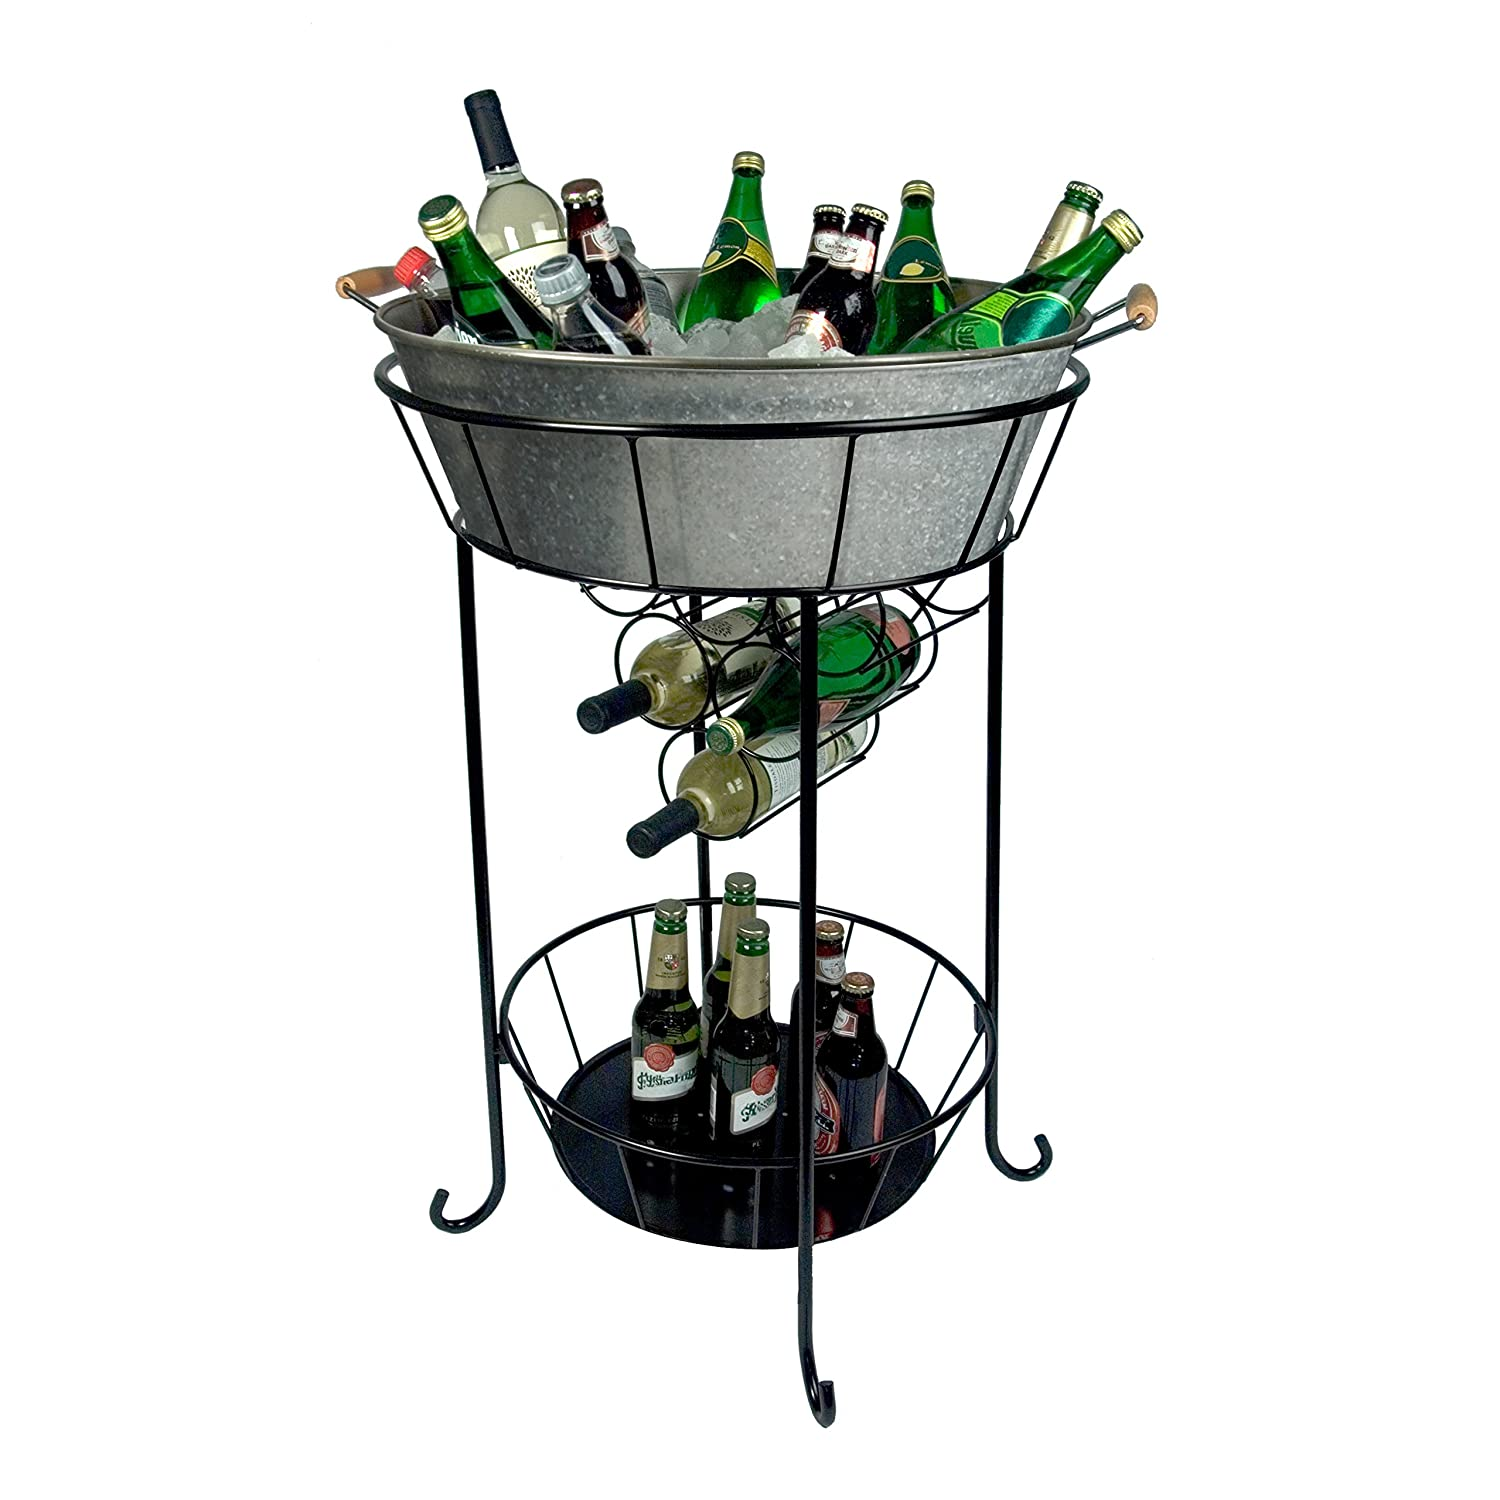 Amazon.com: Artland Oasis Party Tub With Stand, Galvanized, Metal: Home  D?cor Products: Kitchen U0026 Dining